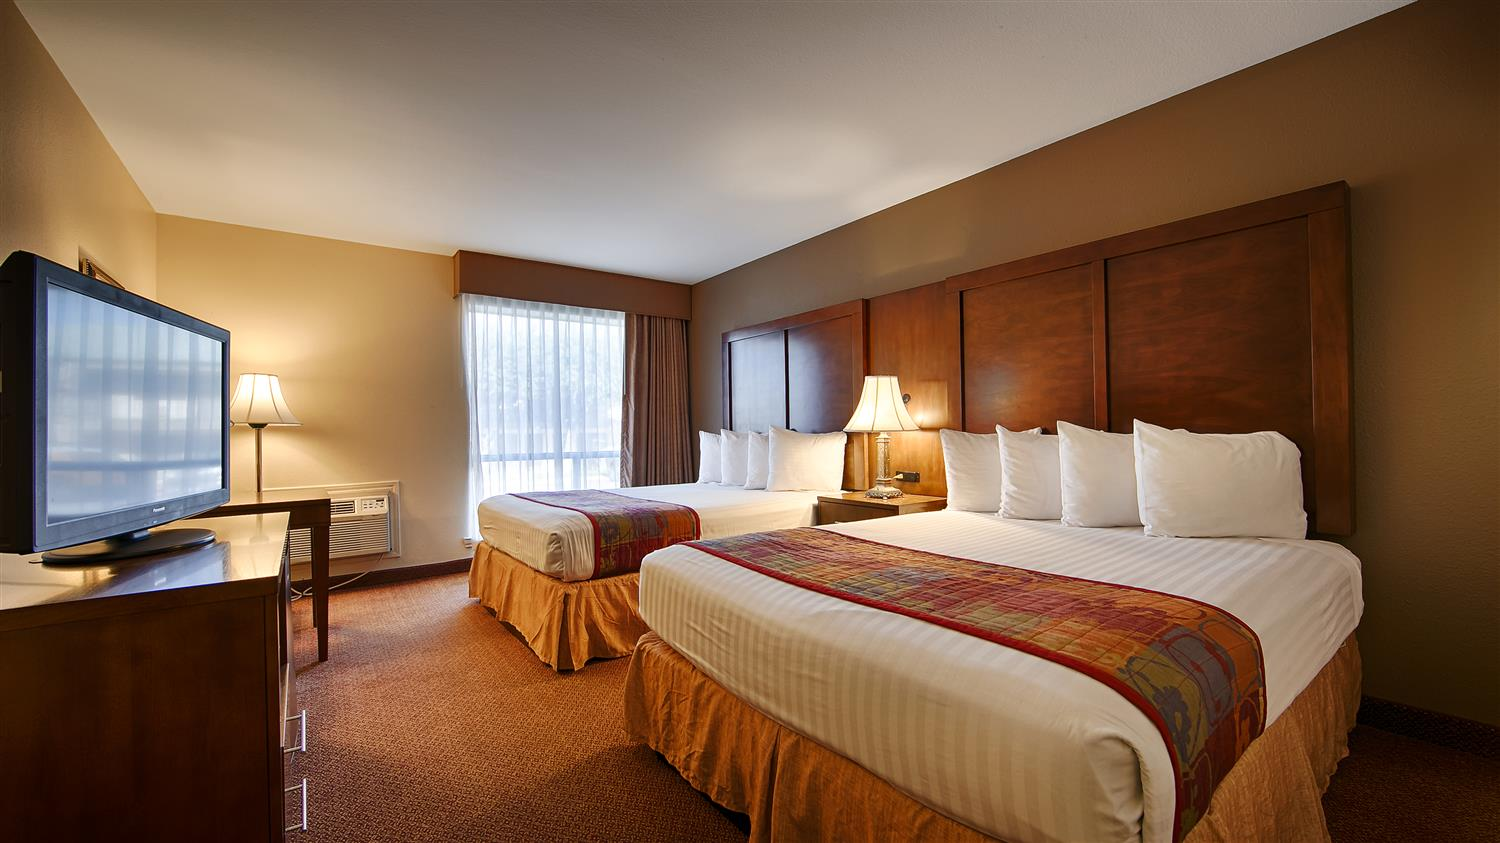 Our Ious Traditional Two Queen Beds Guest Rooms Are Great For Family Or Work Crews To Relax After A Long Day